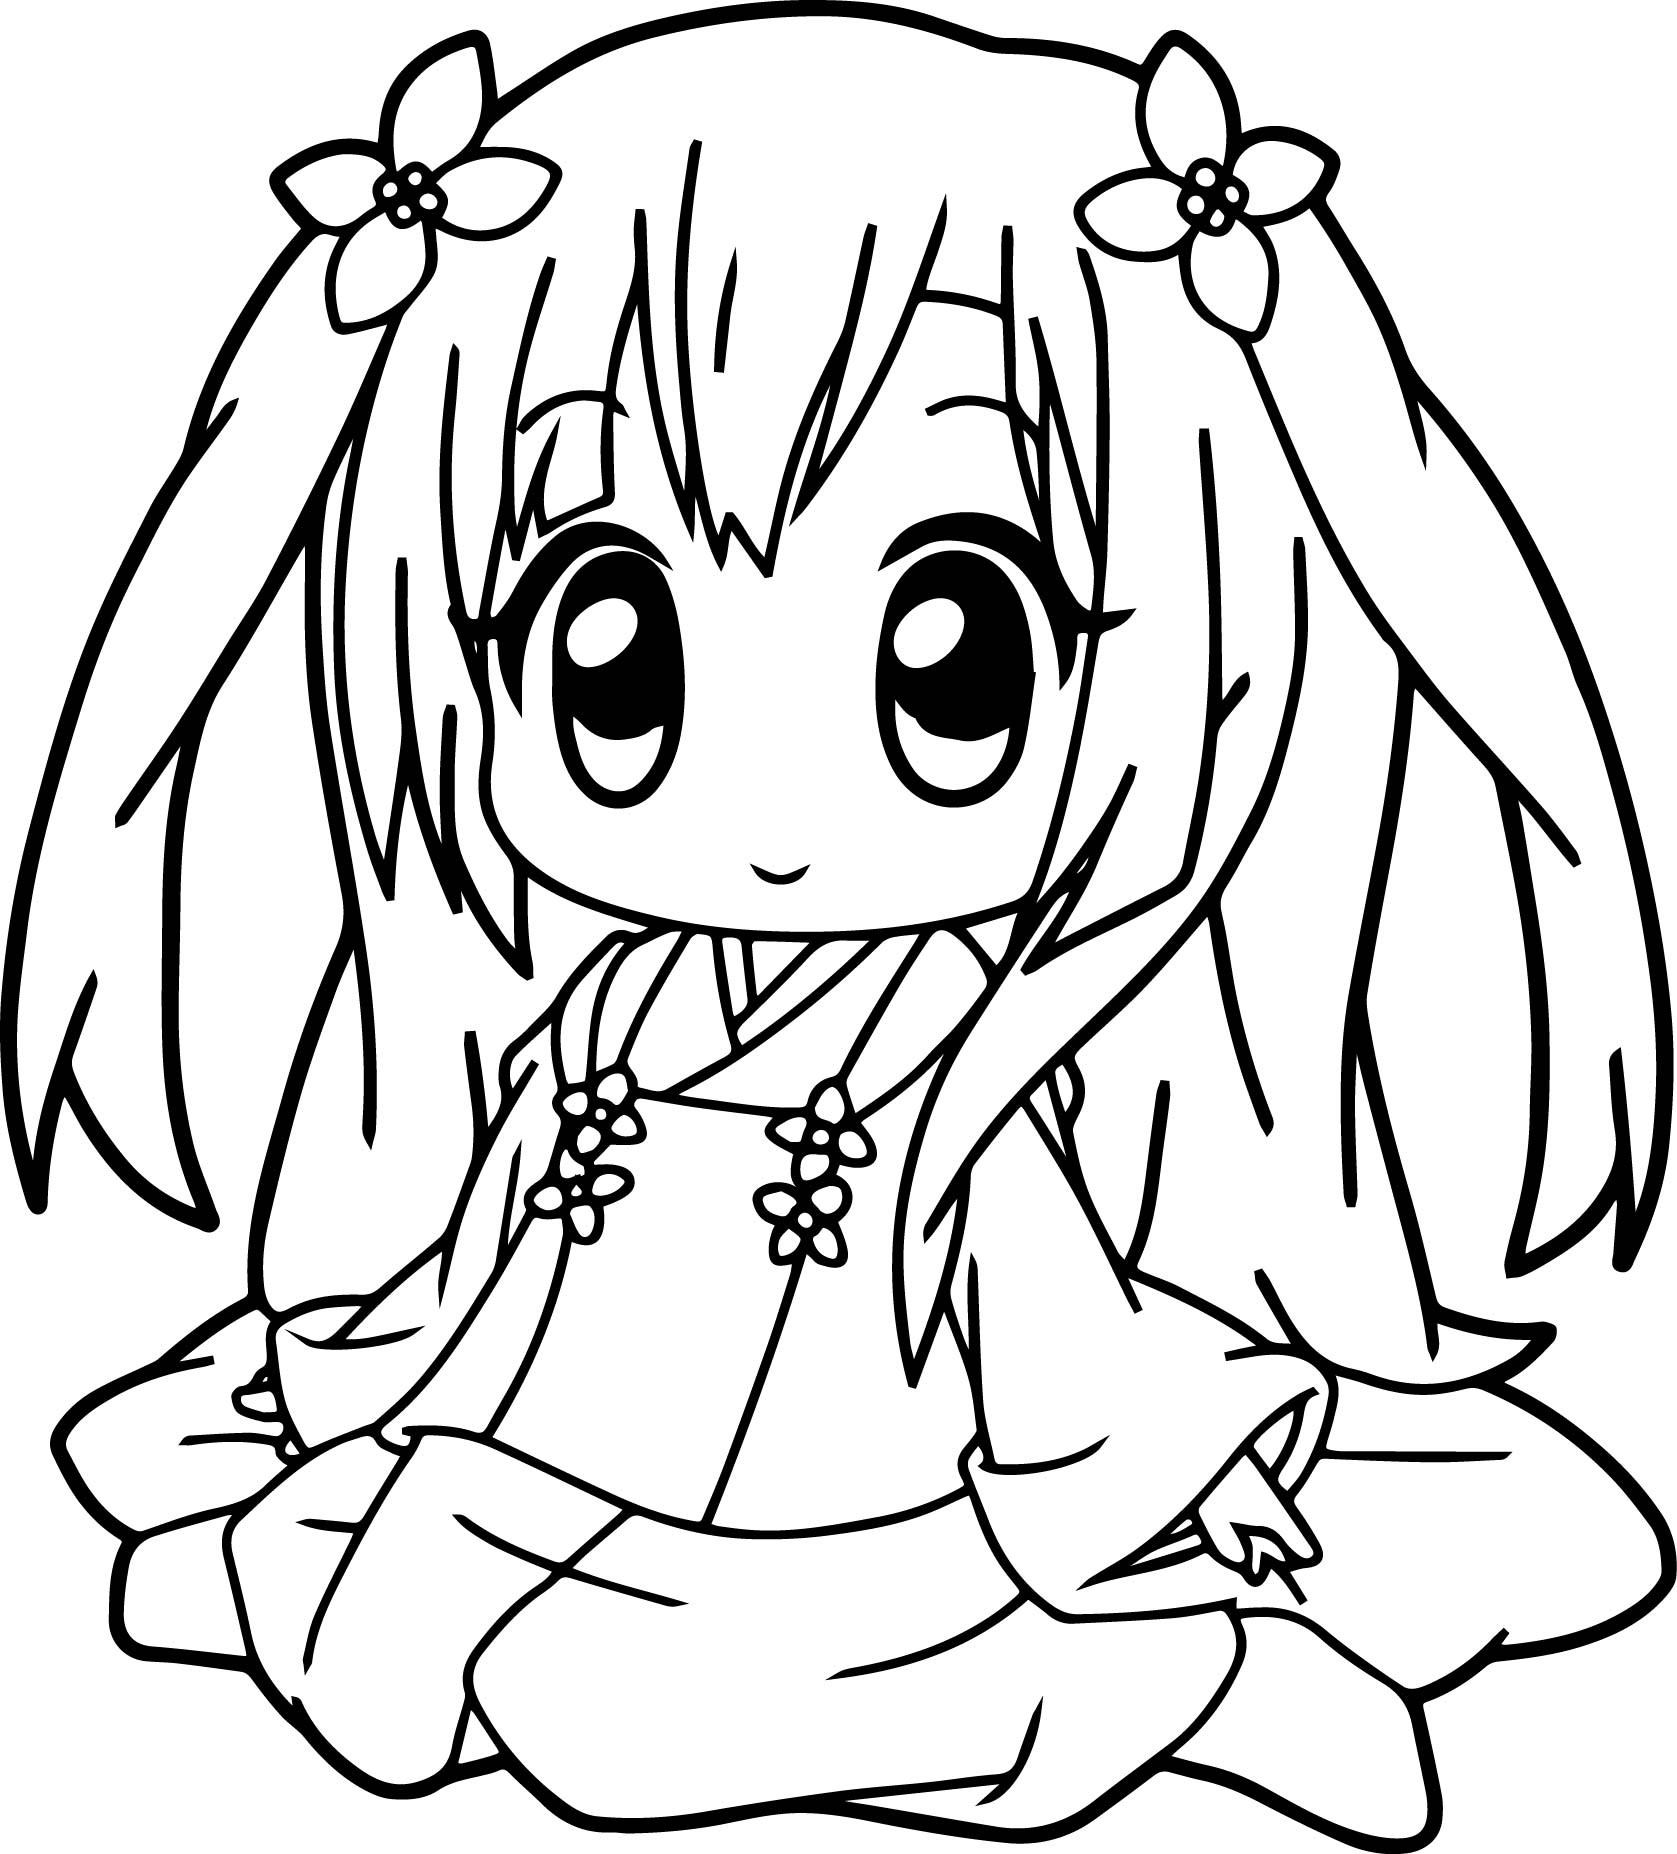 Cute Girl Coloring Sheets For Kids  Anime Girl Coloring Pages coloringsuite